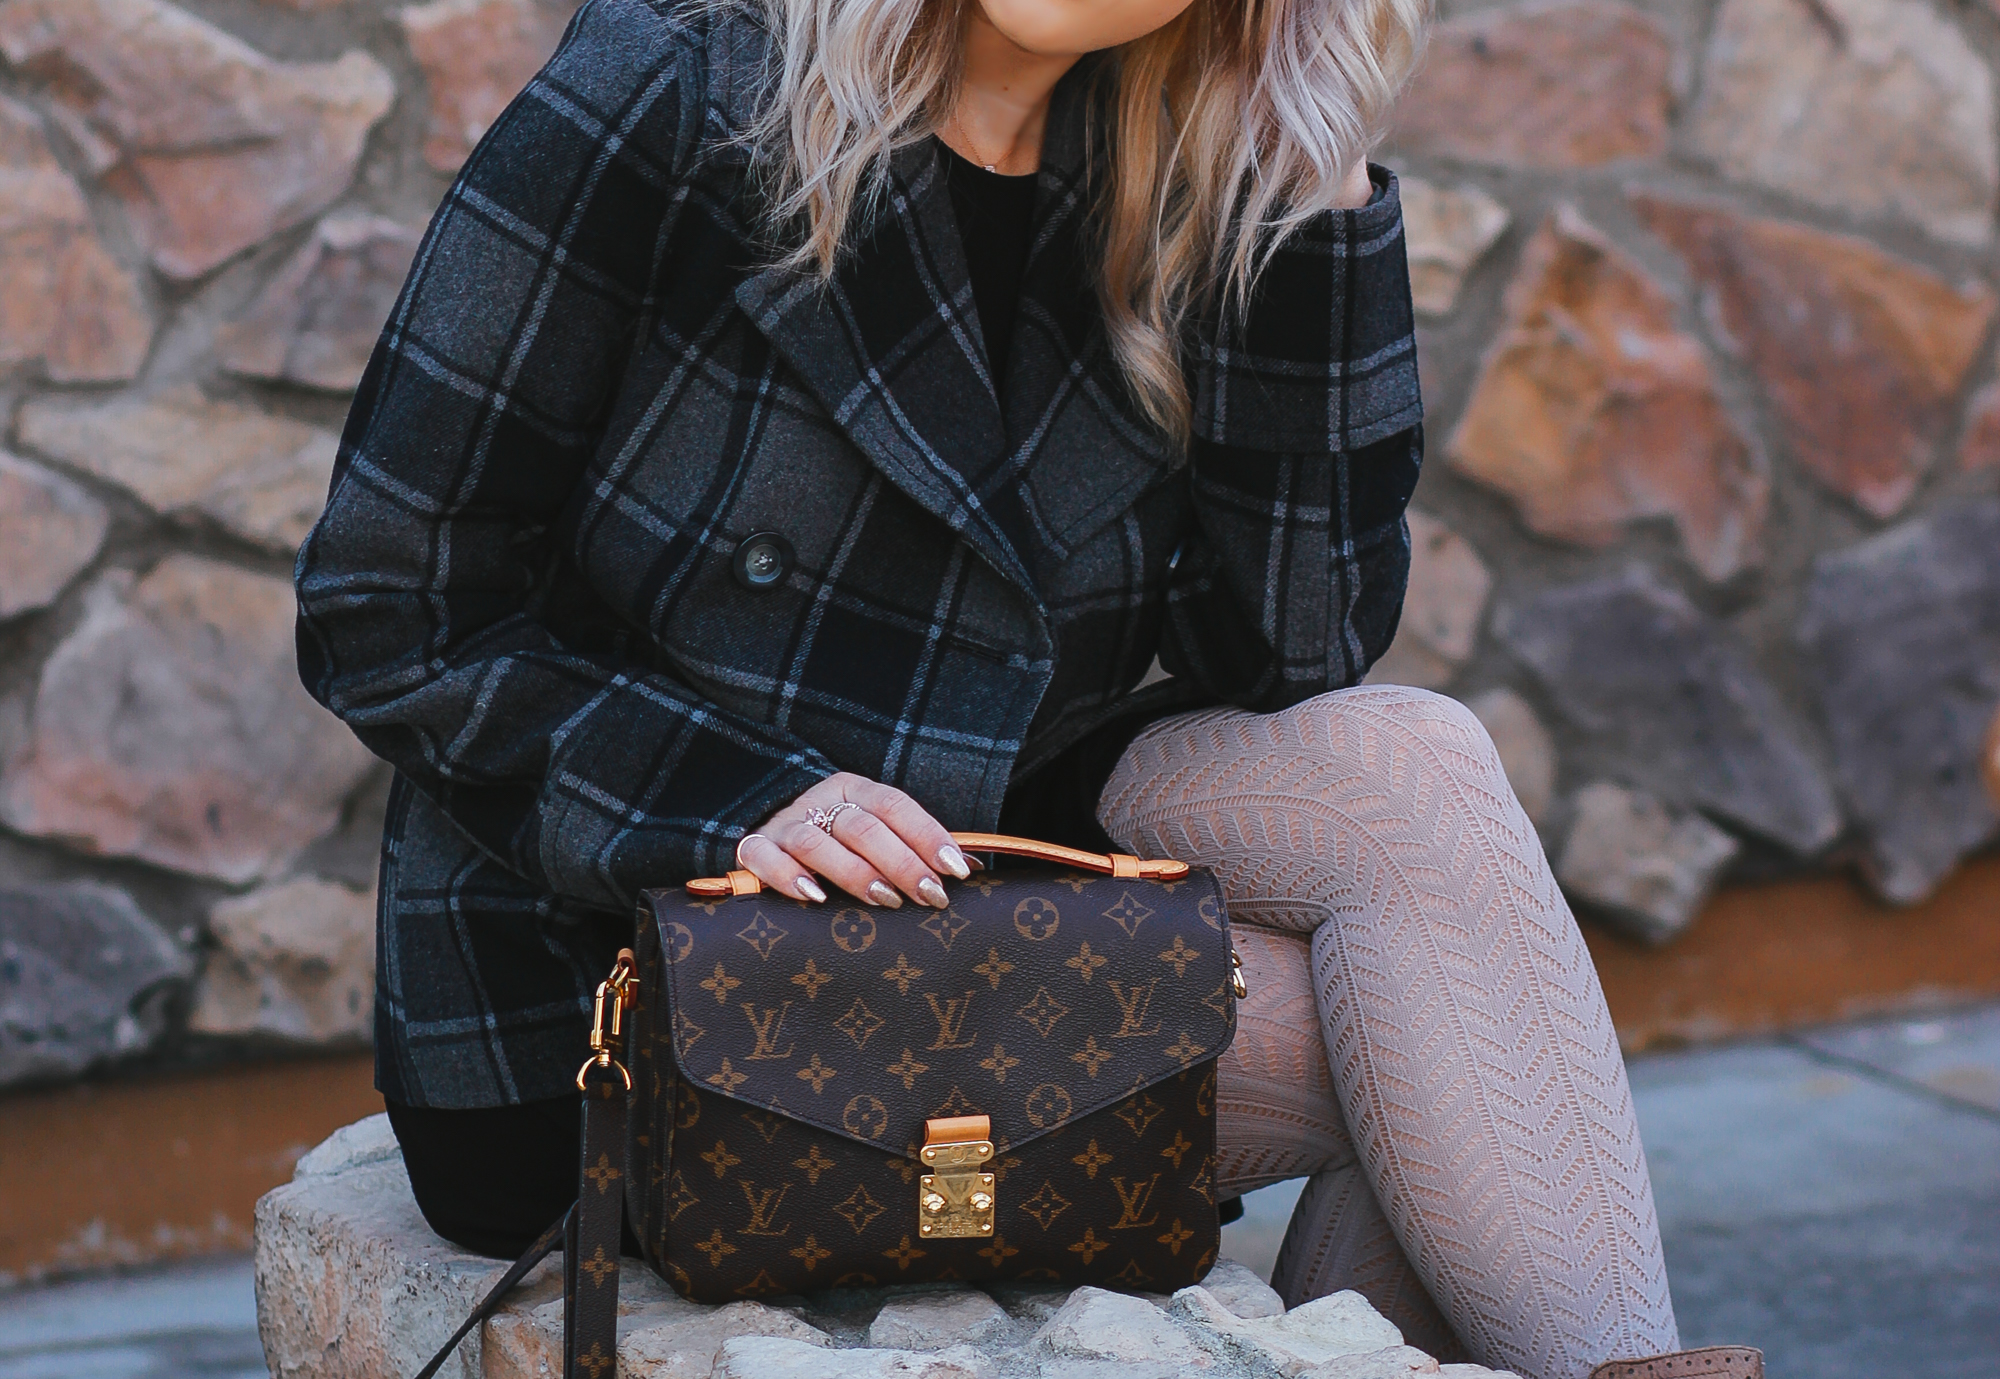 Blondie in the City | Plaid, Tights, Boots, Louis Vuitton